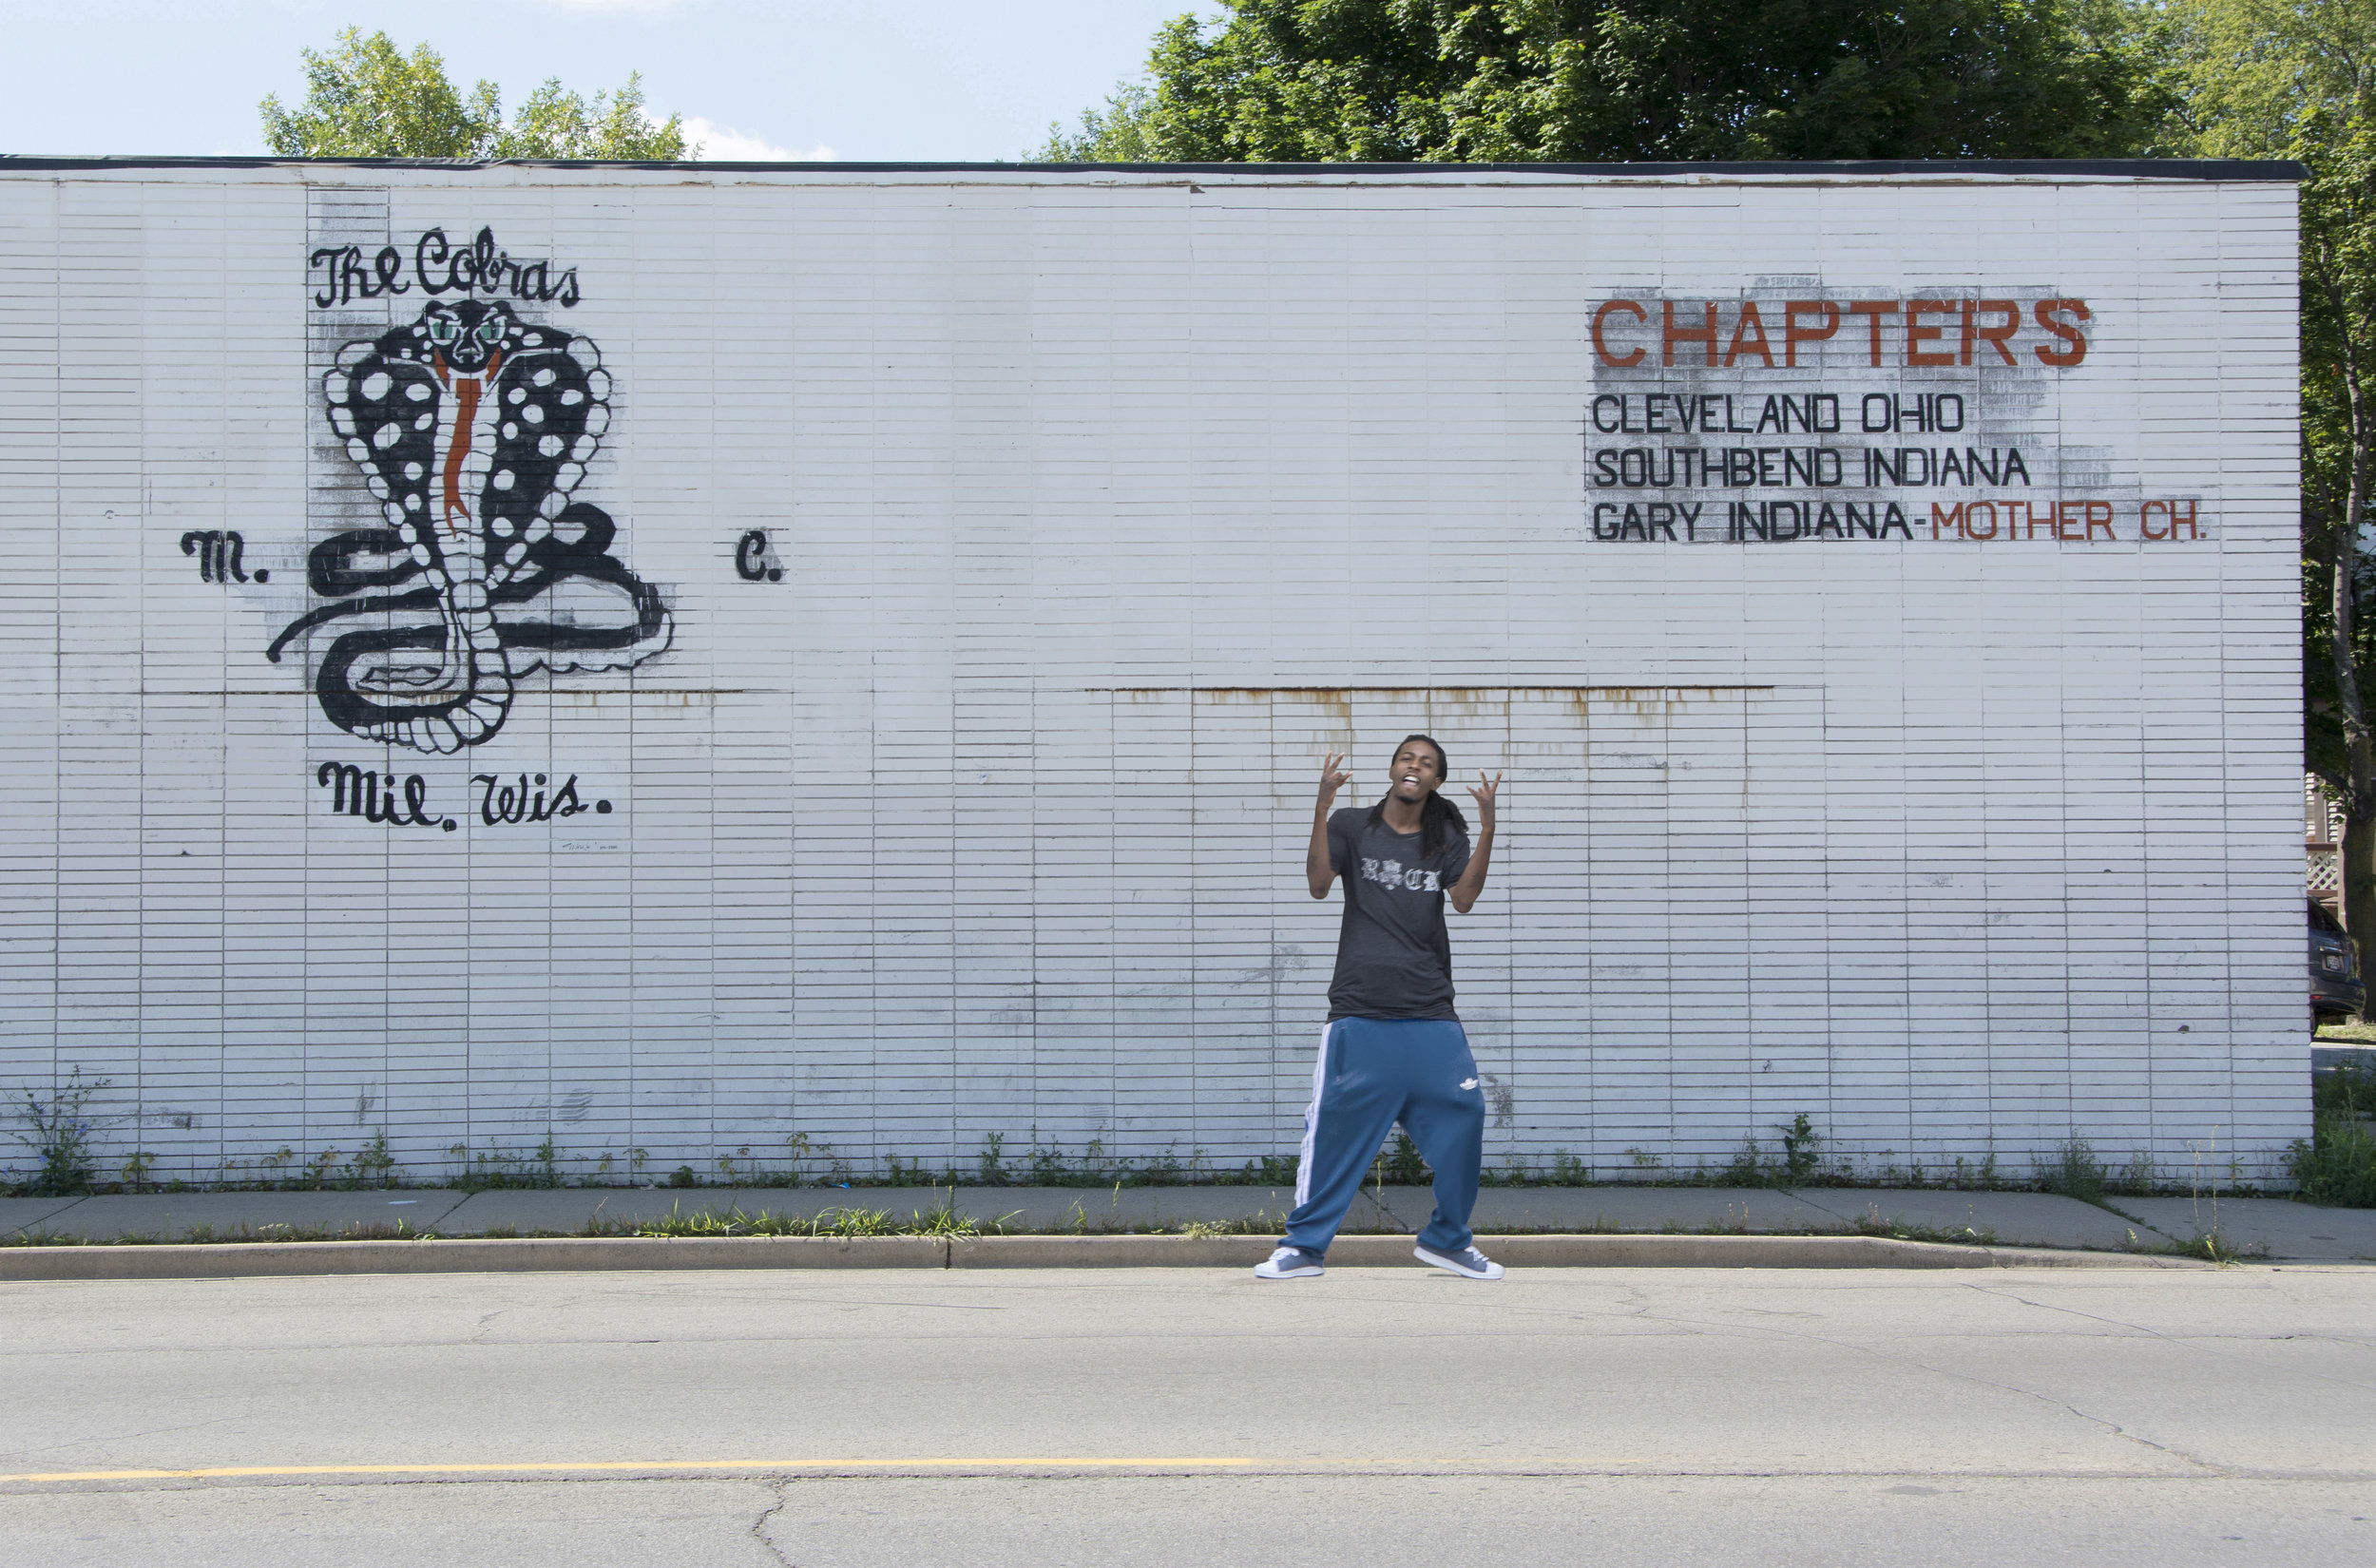 I asked this gang member to pose in front of the deserted Cobras building on North Avenue. He called me a motherfucker before I had a chance to explain. Finally, he posed but did it his way.